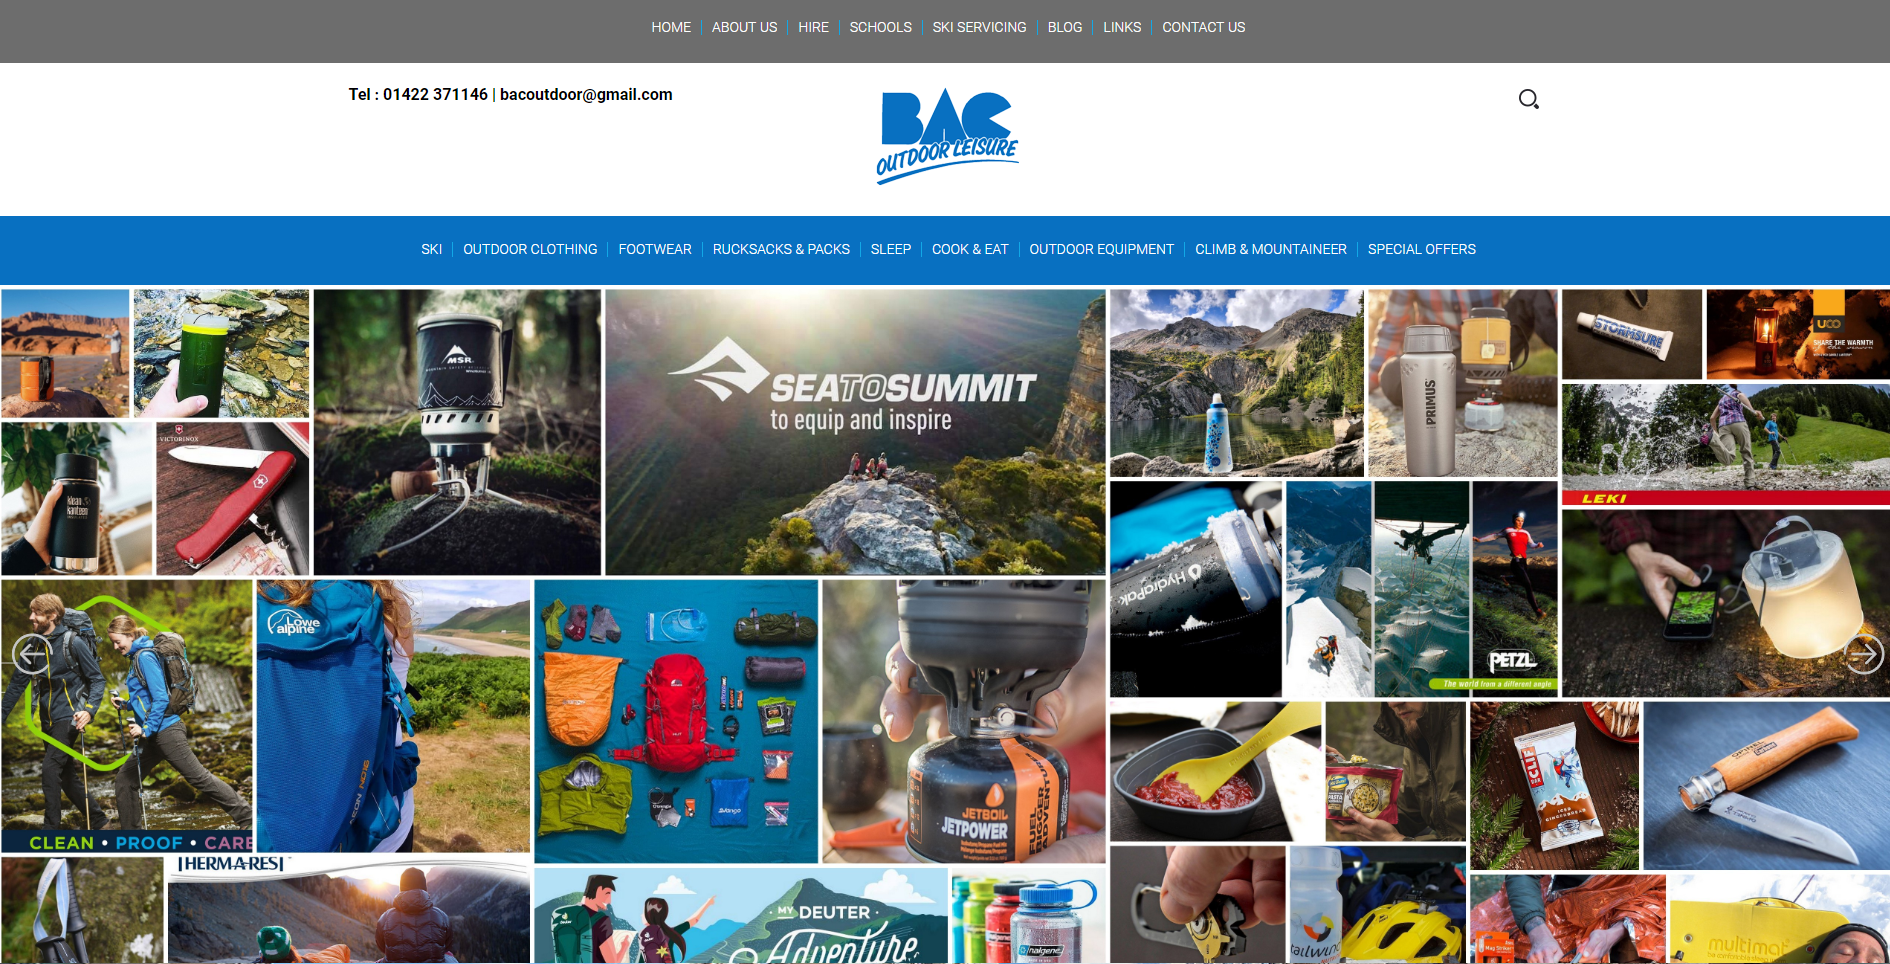 BAC Outdoors /